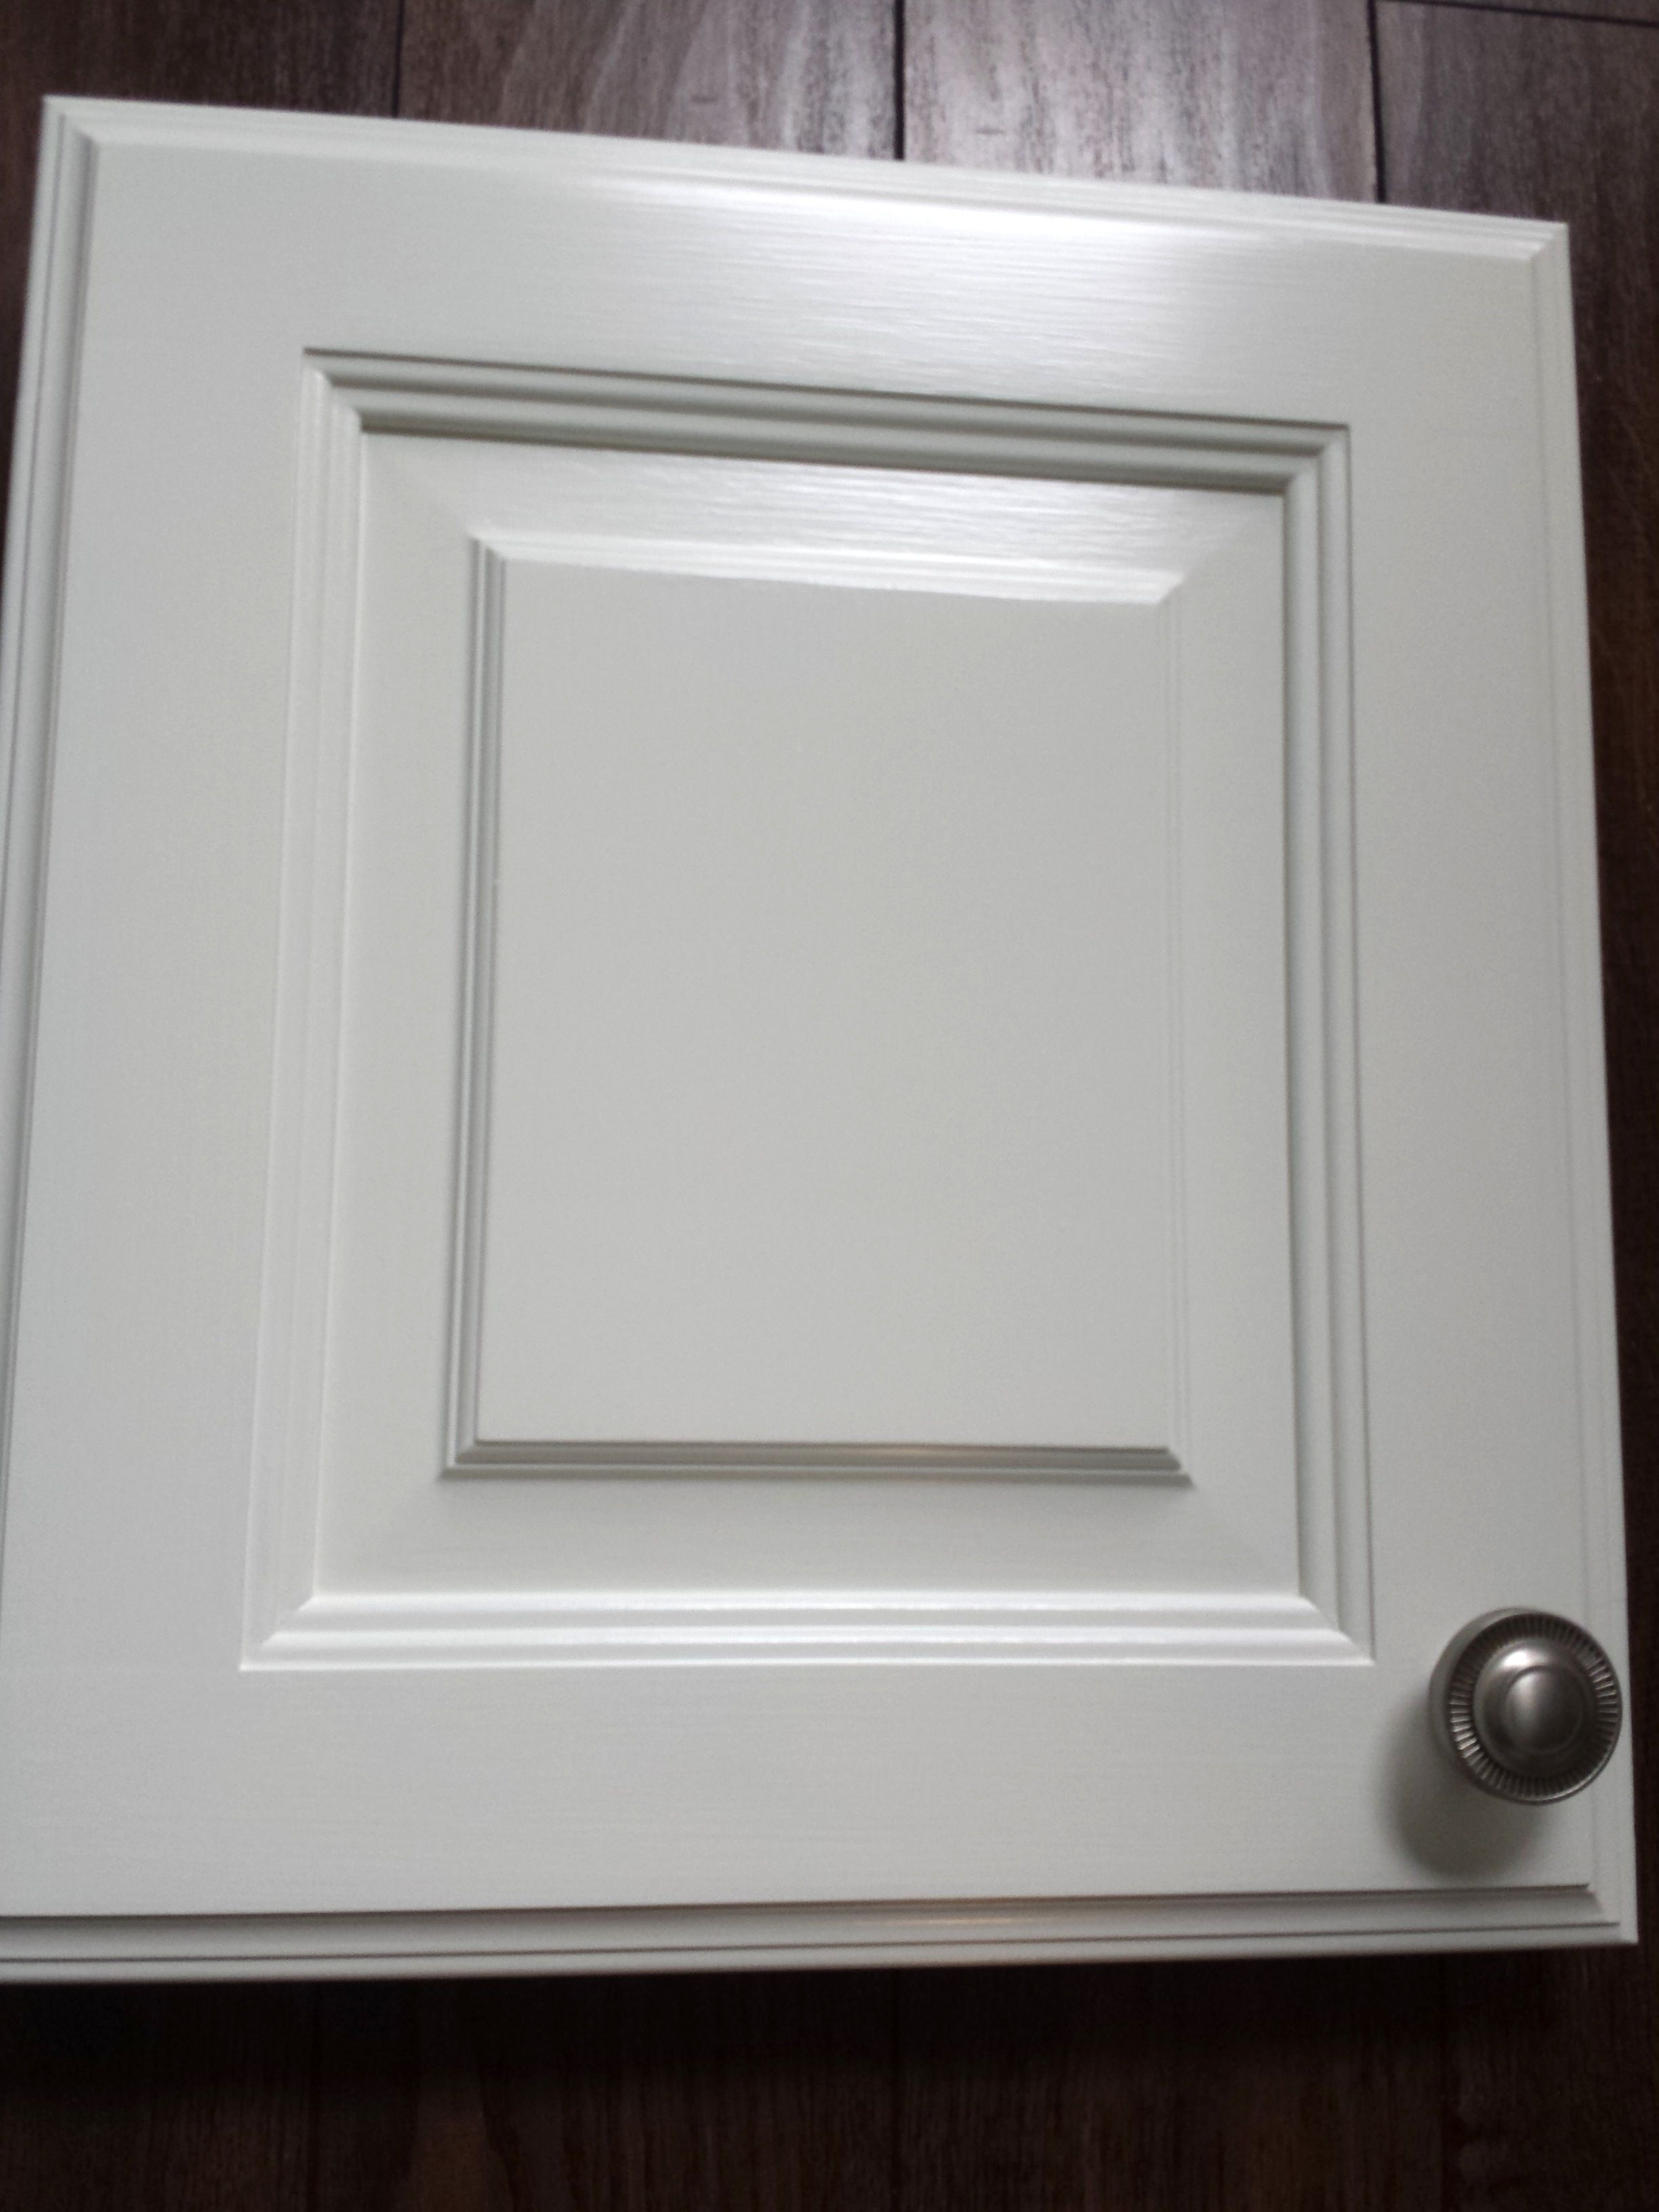 Benjamin Moore White Dove in Advance Paint. Hardware from ...